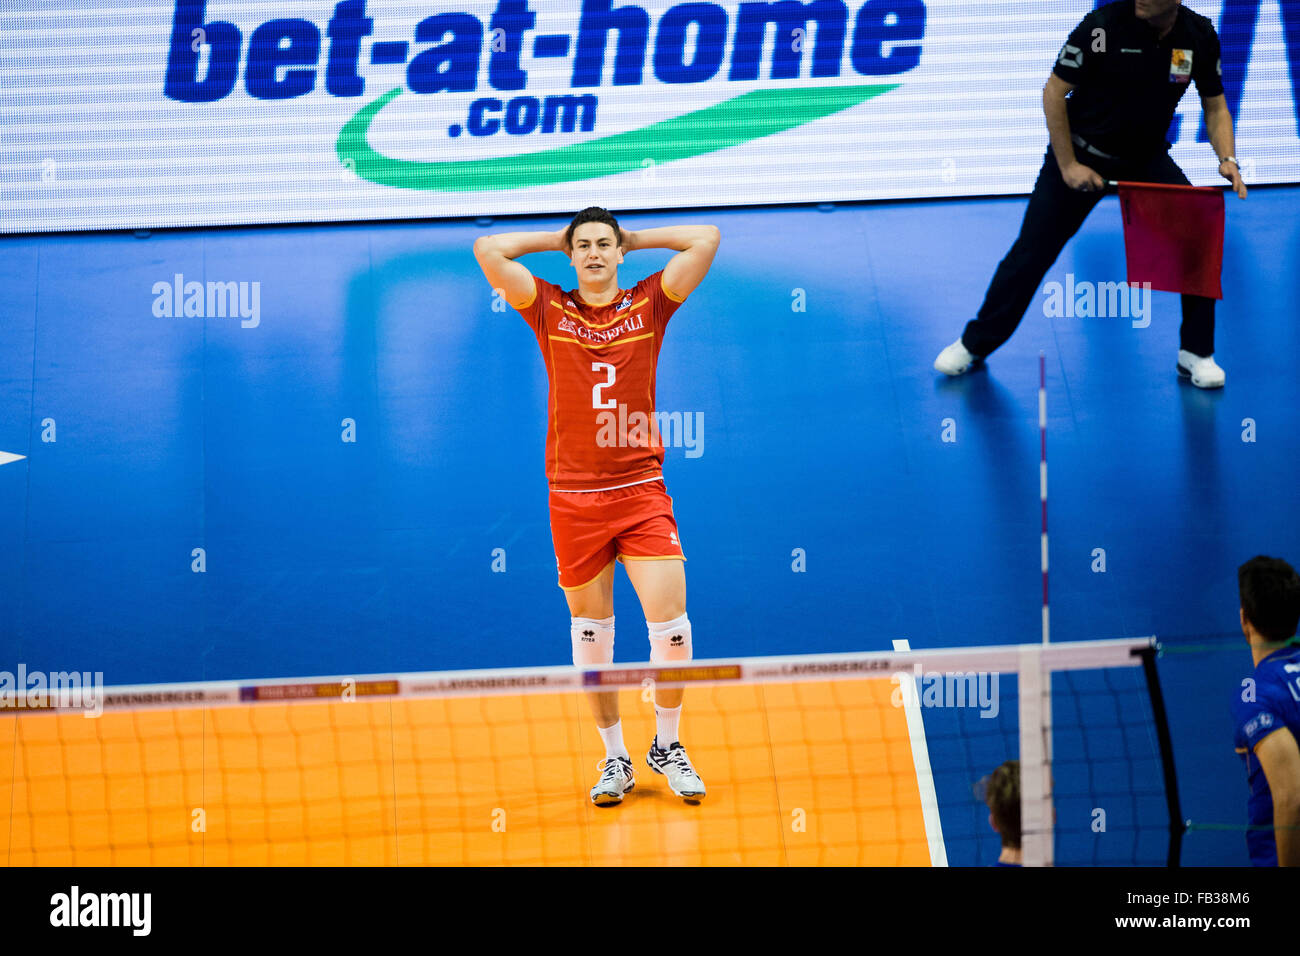 France's Jenia Grebennikow after a missed point during the game of the Olympic Qualification Men's Group - Stock Image